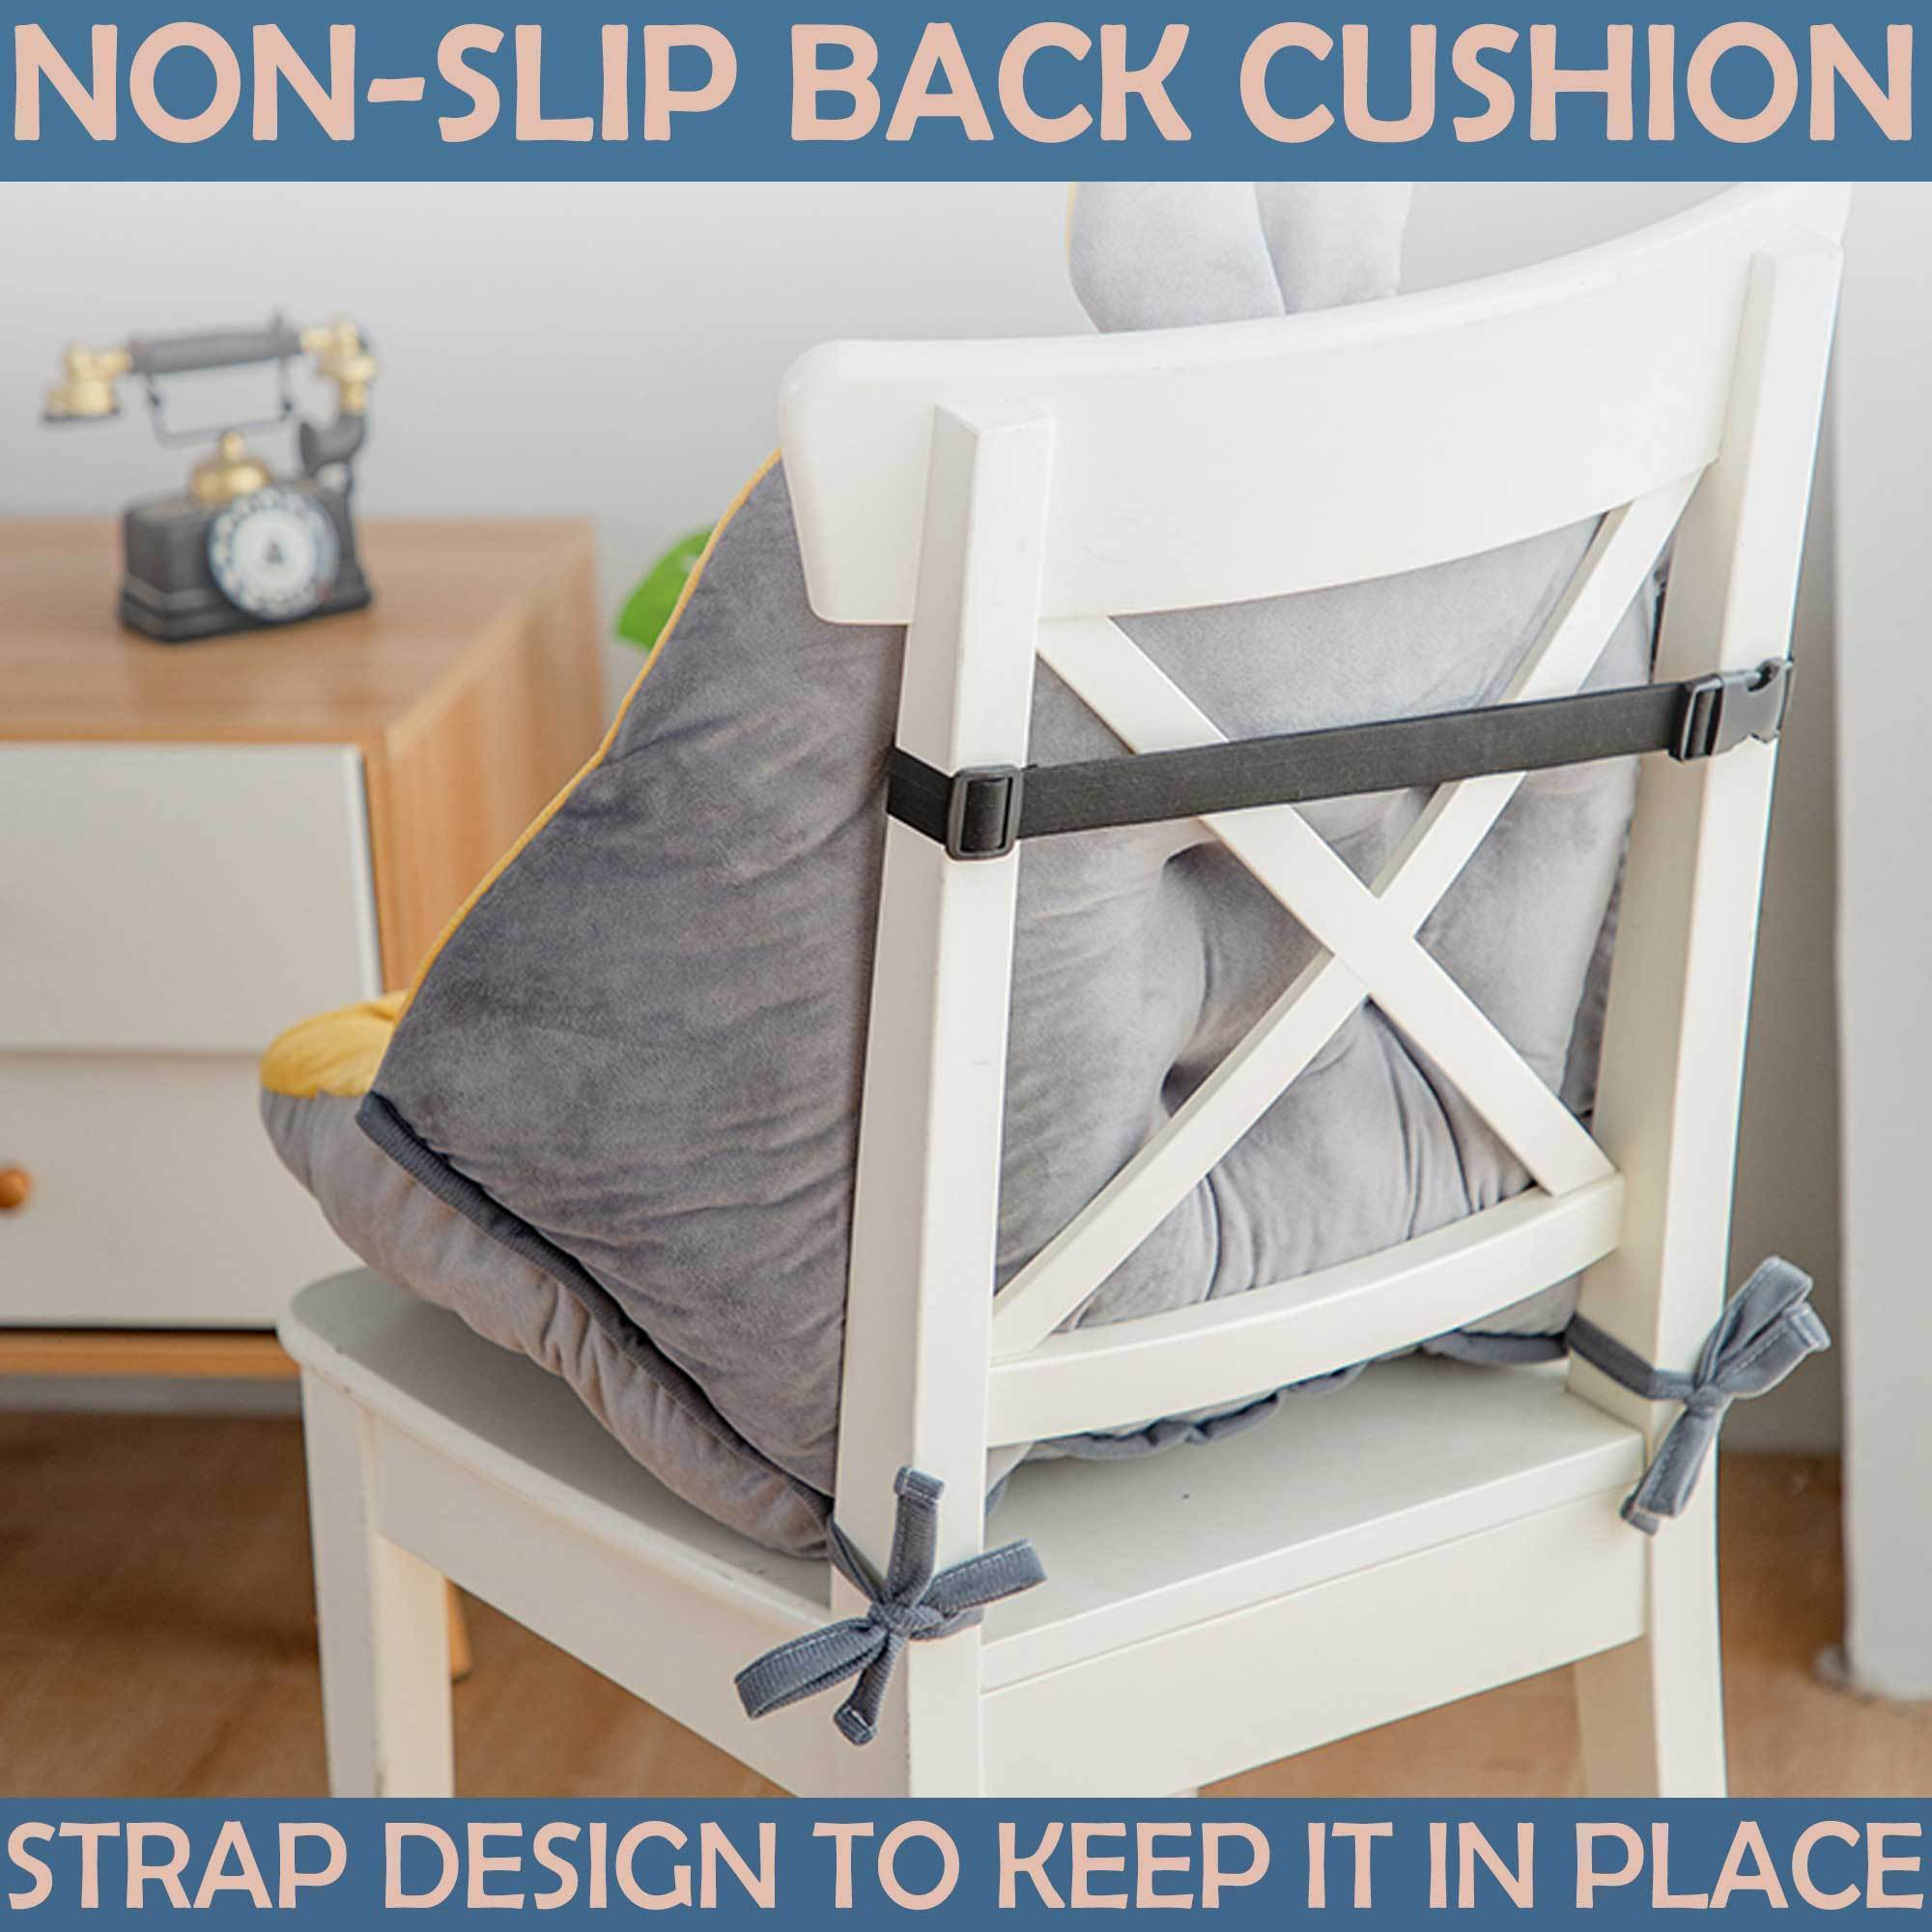 Semi-Enclosed One Seat Cushion